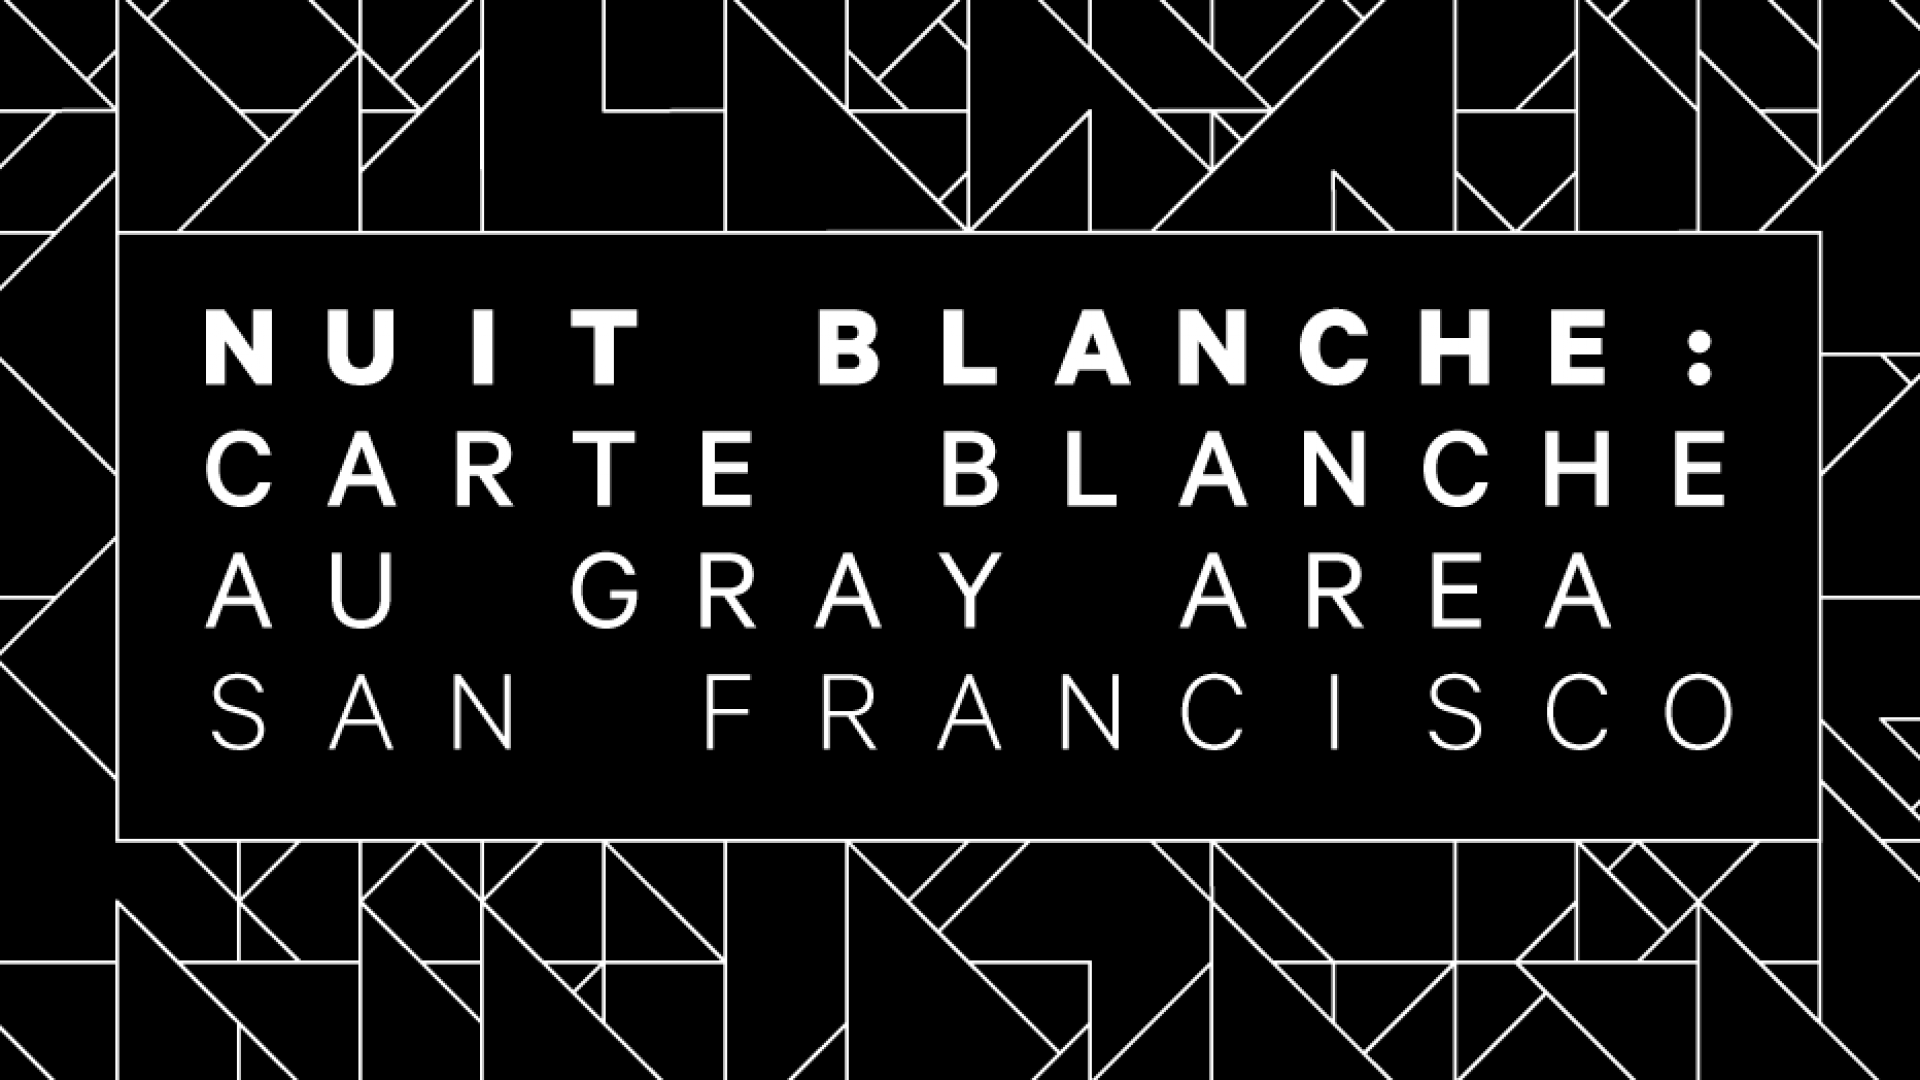 Nuit blanche 2019